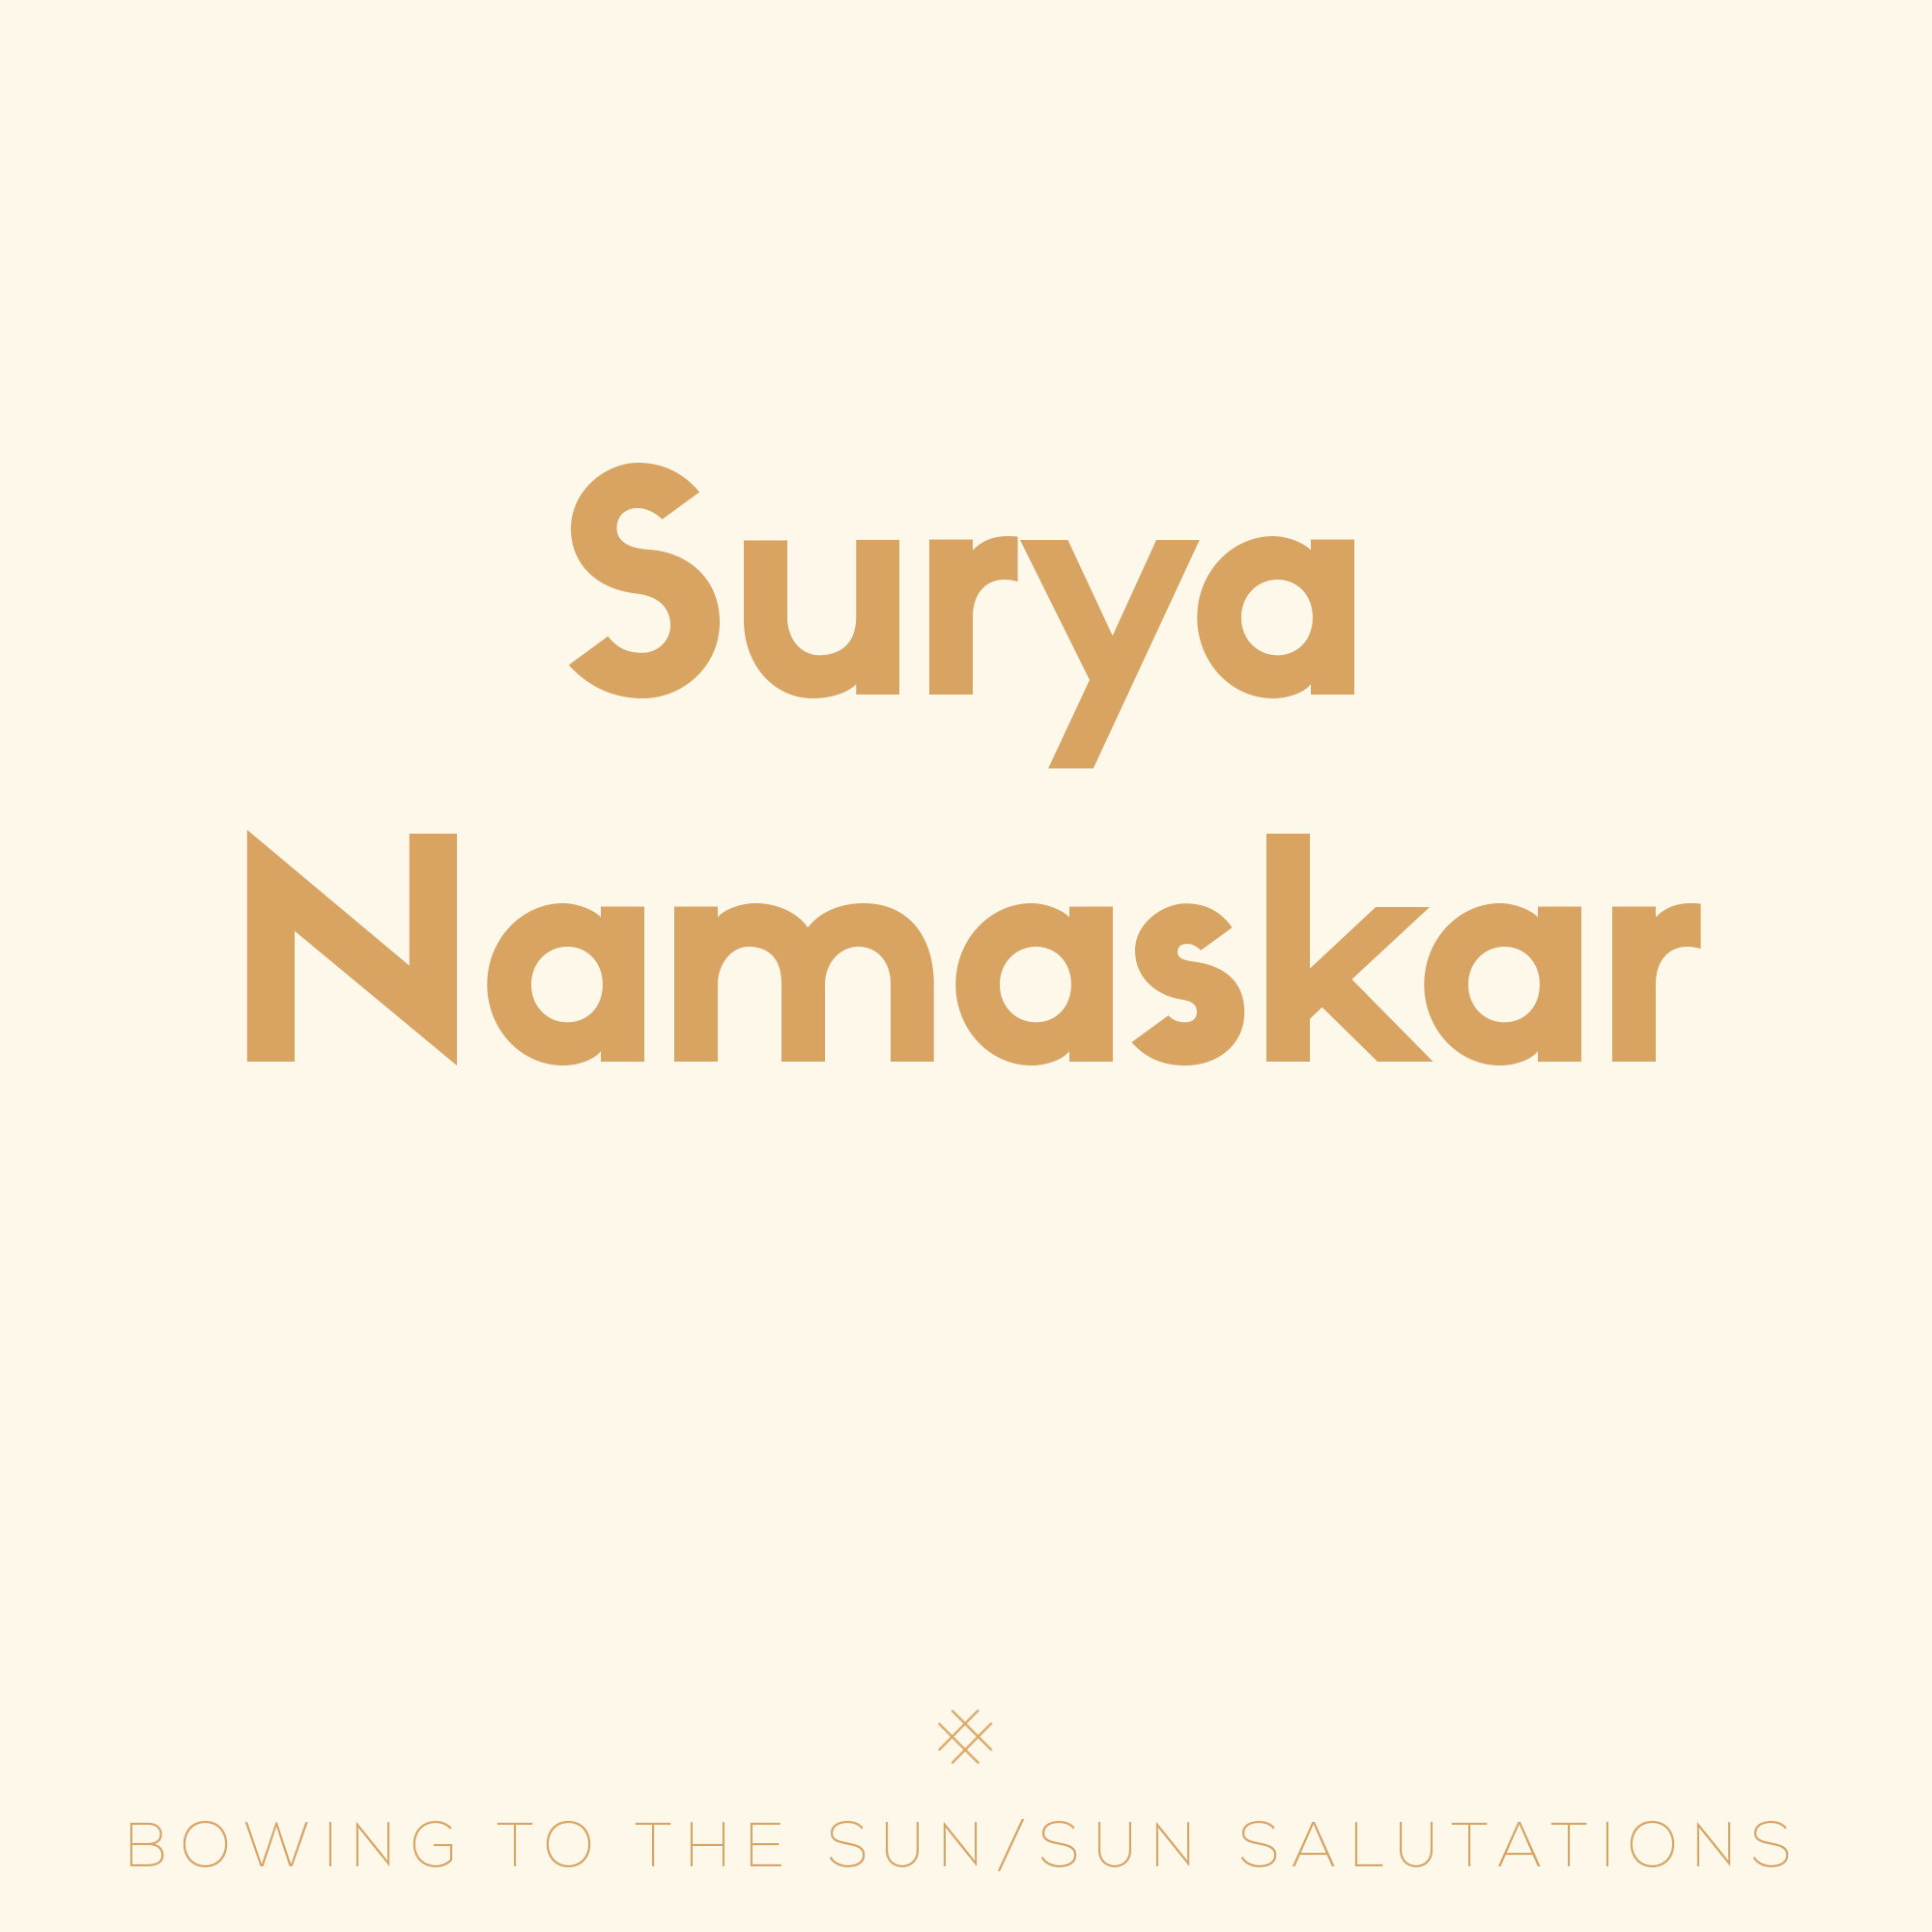 1 surya namaskar Sun is the major reason of life on earth which provide a great source of energy to show gratitude towards the sun, ancient yogis found that surya namaskar is the best way to gain the divine.